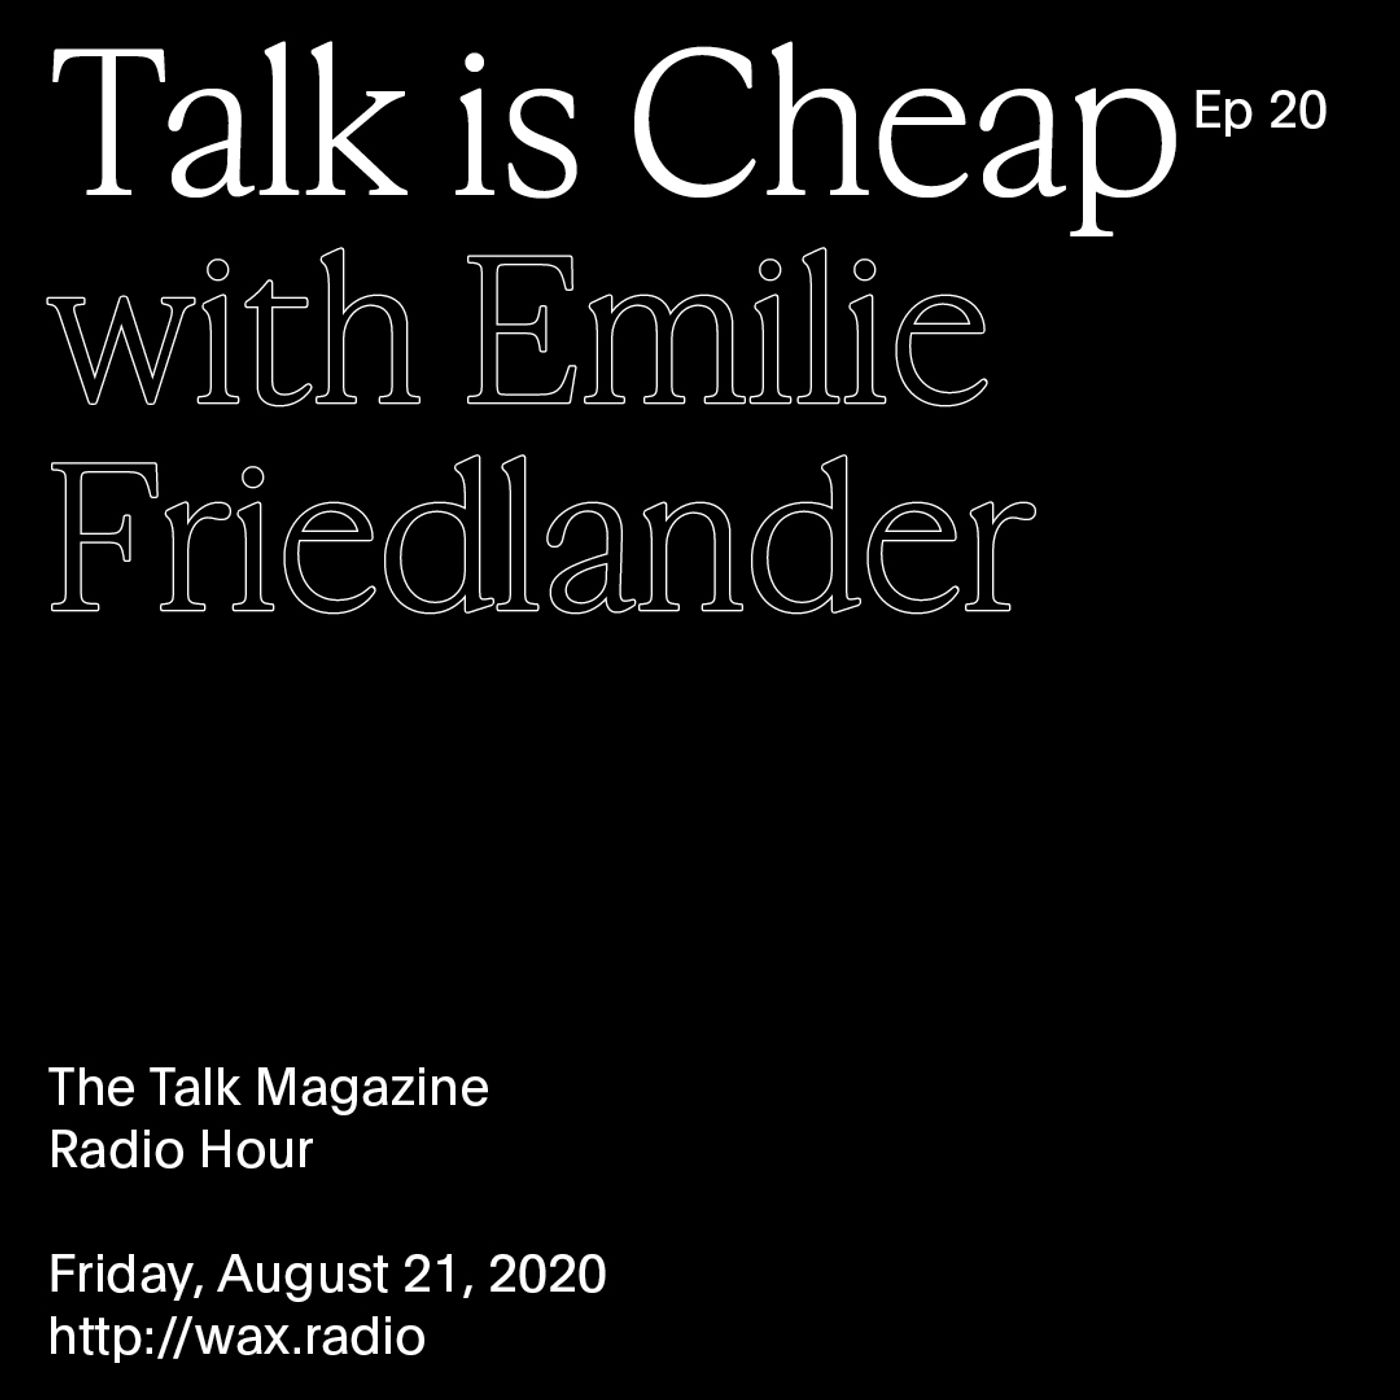 Episode 20 with Emilie Friedlander